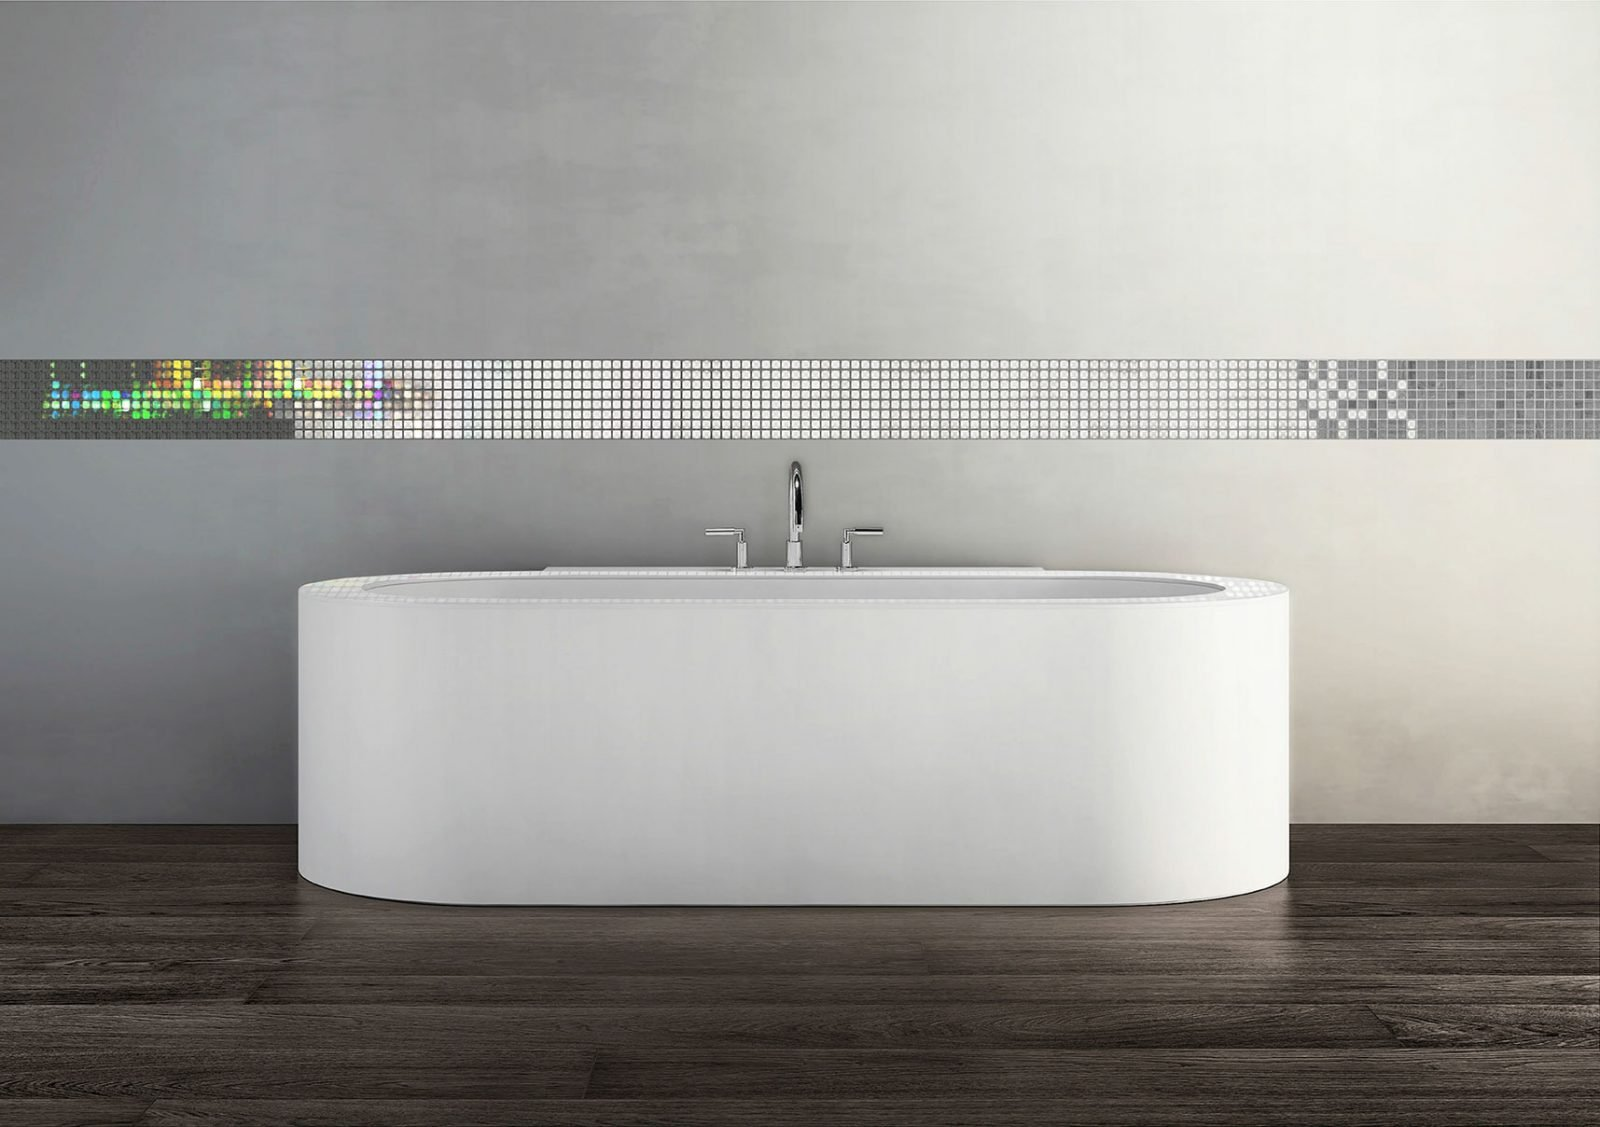 Image of a bathroom environment with volatiles mosaic tiles installed in an elegant smart line above the bath tub